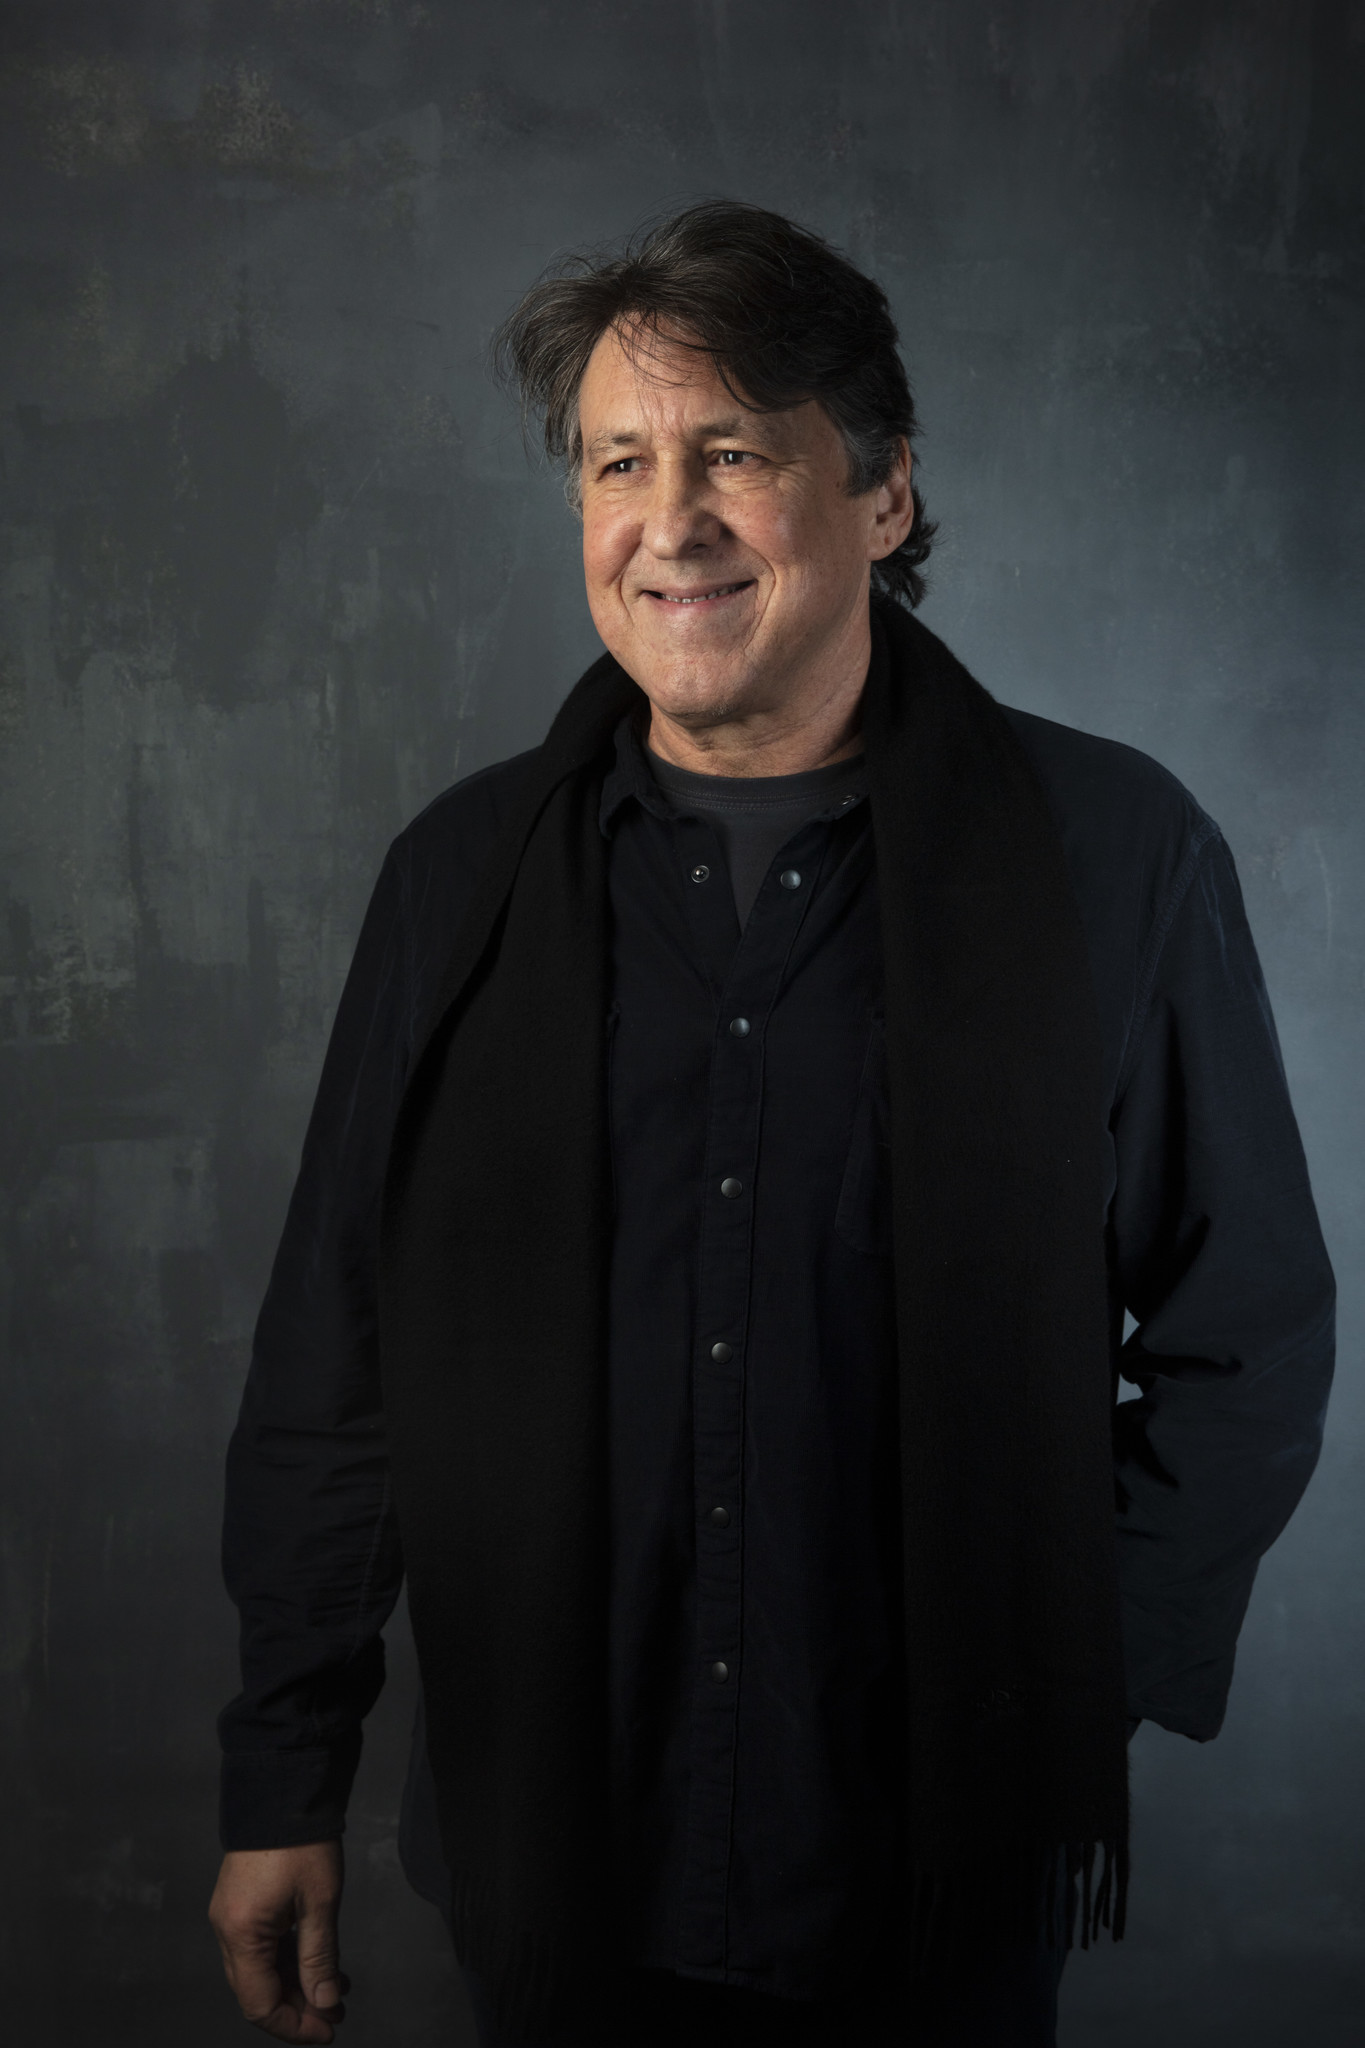 Producer Cameron Crowe